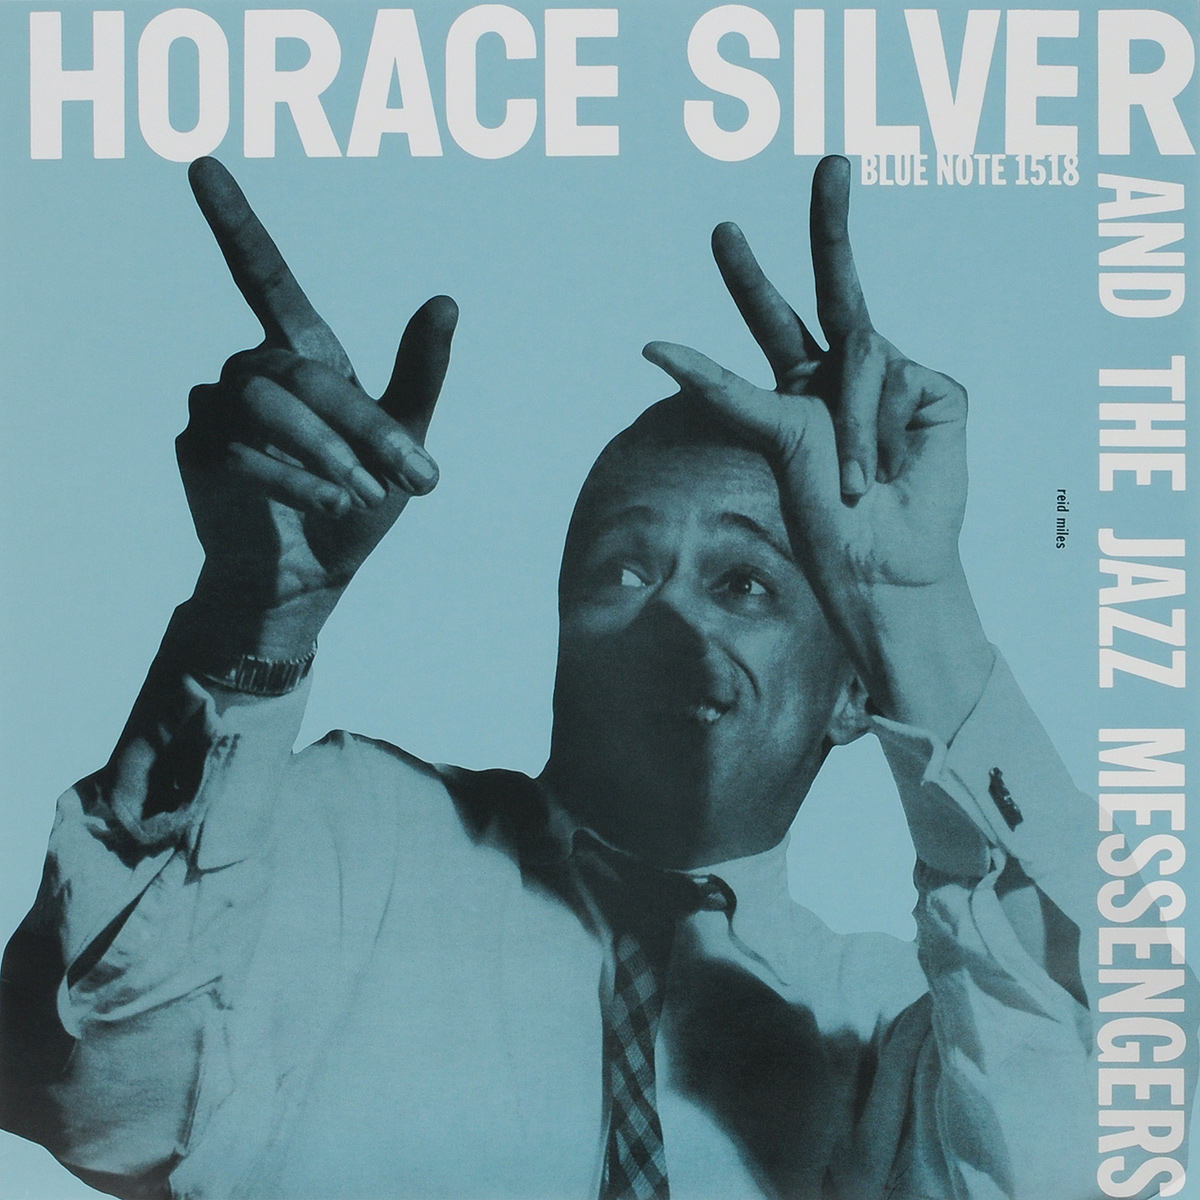 Хорэс Сильвер Horace Silver. Horace Silver And The Jazz Messengers (LP) 1 5 1 2 phillips 0 8 torx screwdrivers repair tool kit for iphone samsung silver blue